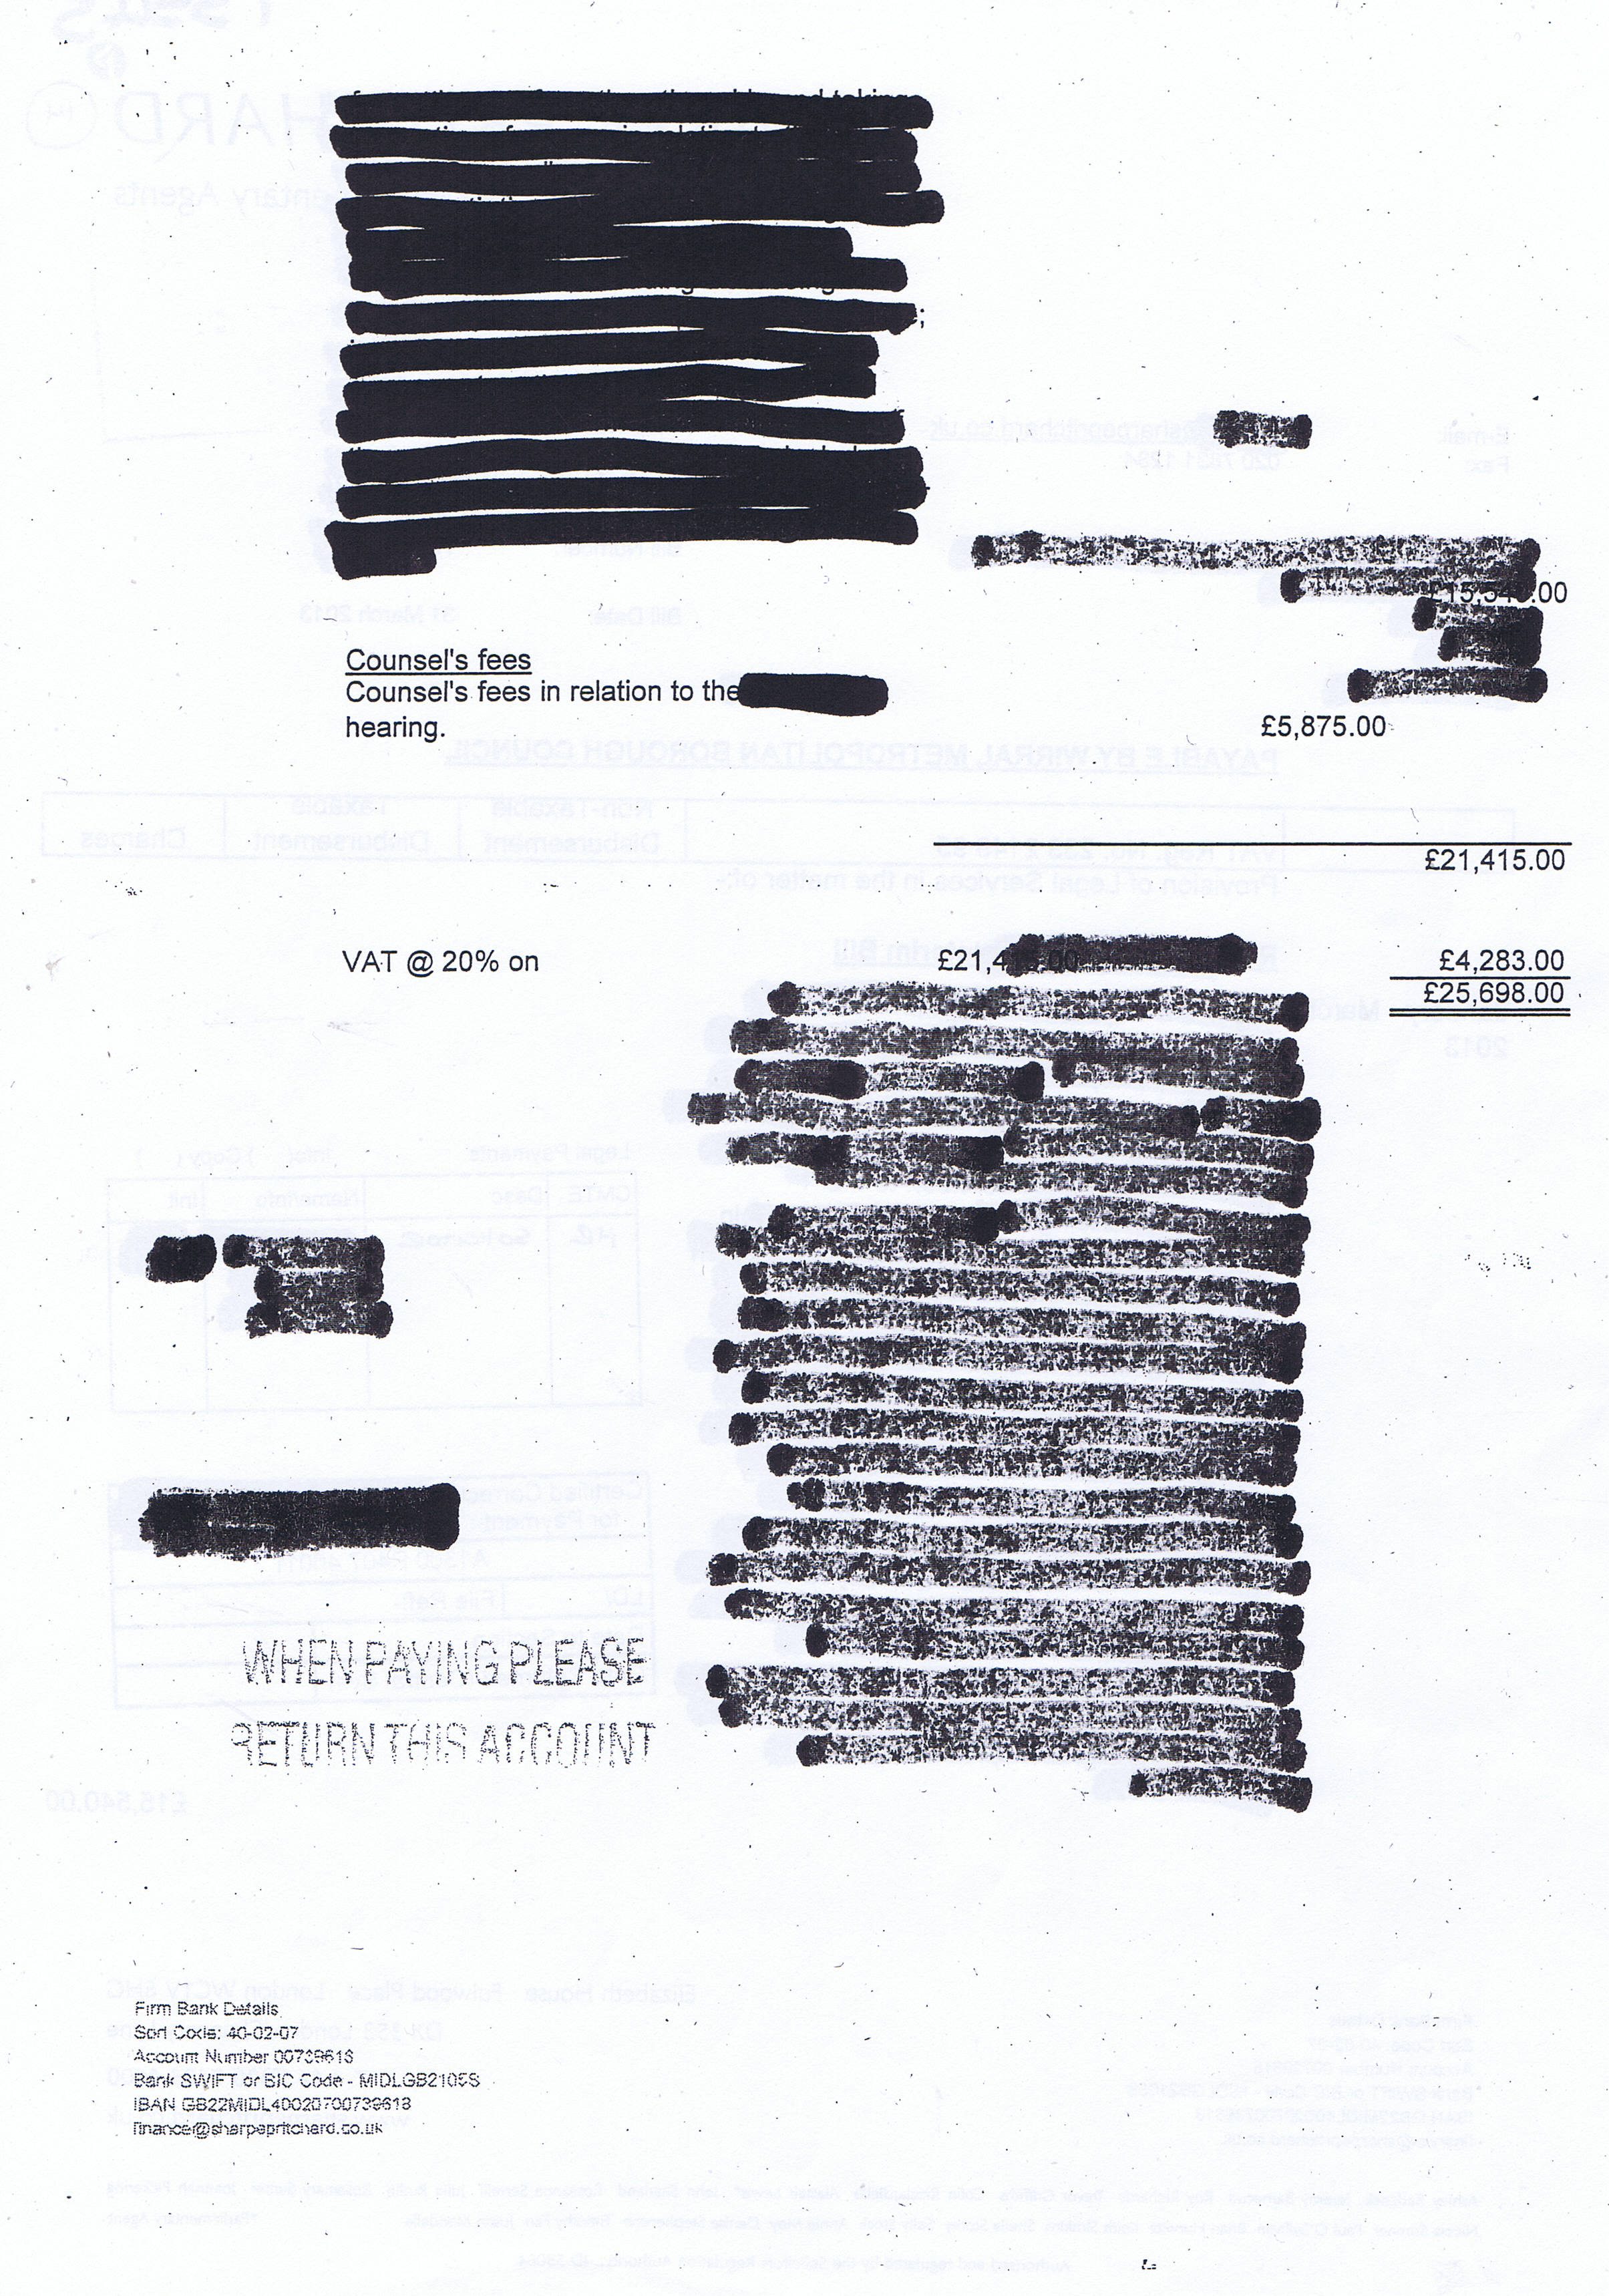 word with letters do you want to what 10 redacted invoices 6 on 25698 | sharpe pritchard invoice 1 page 2 of 2 2nd may 2013 c2a325698 legal services hr wirral council